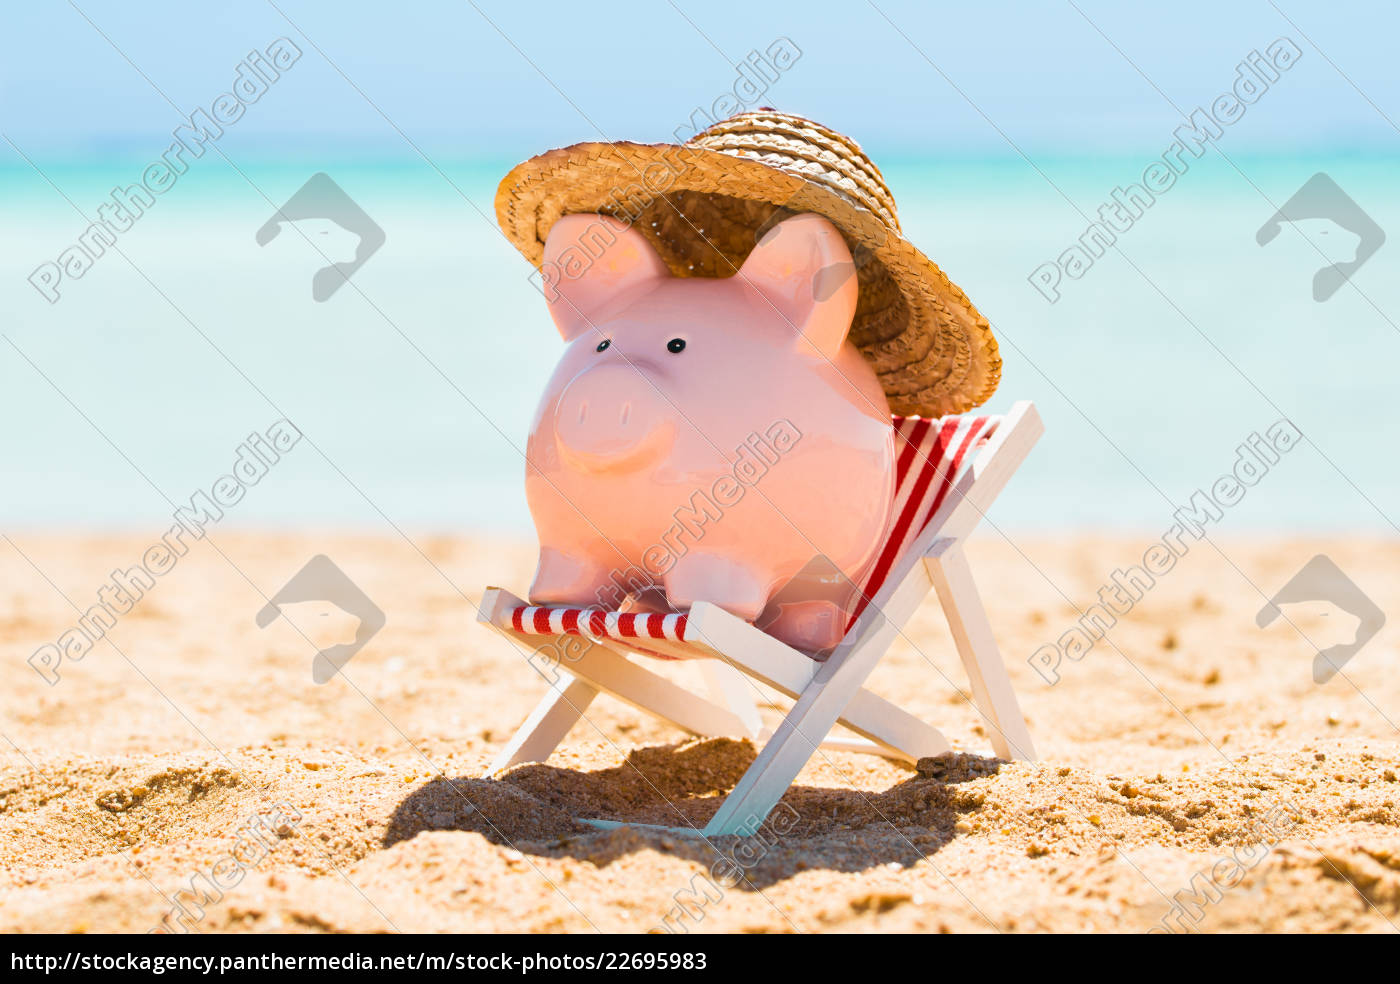 piggy, bank, with, straw, hat, over - 22695983